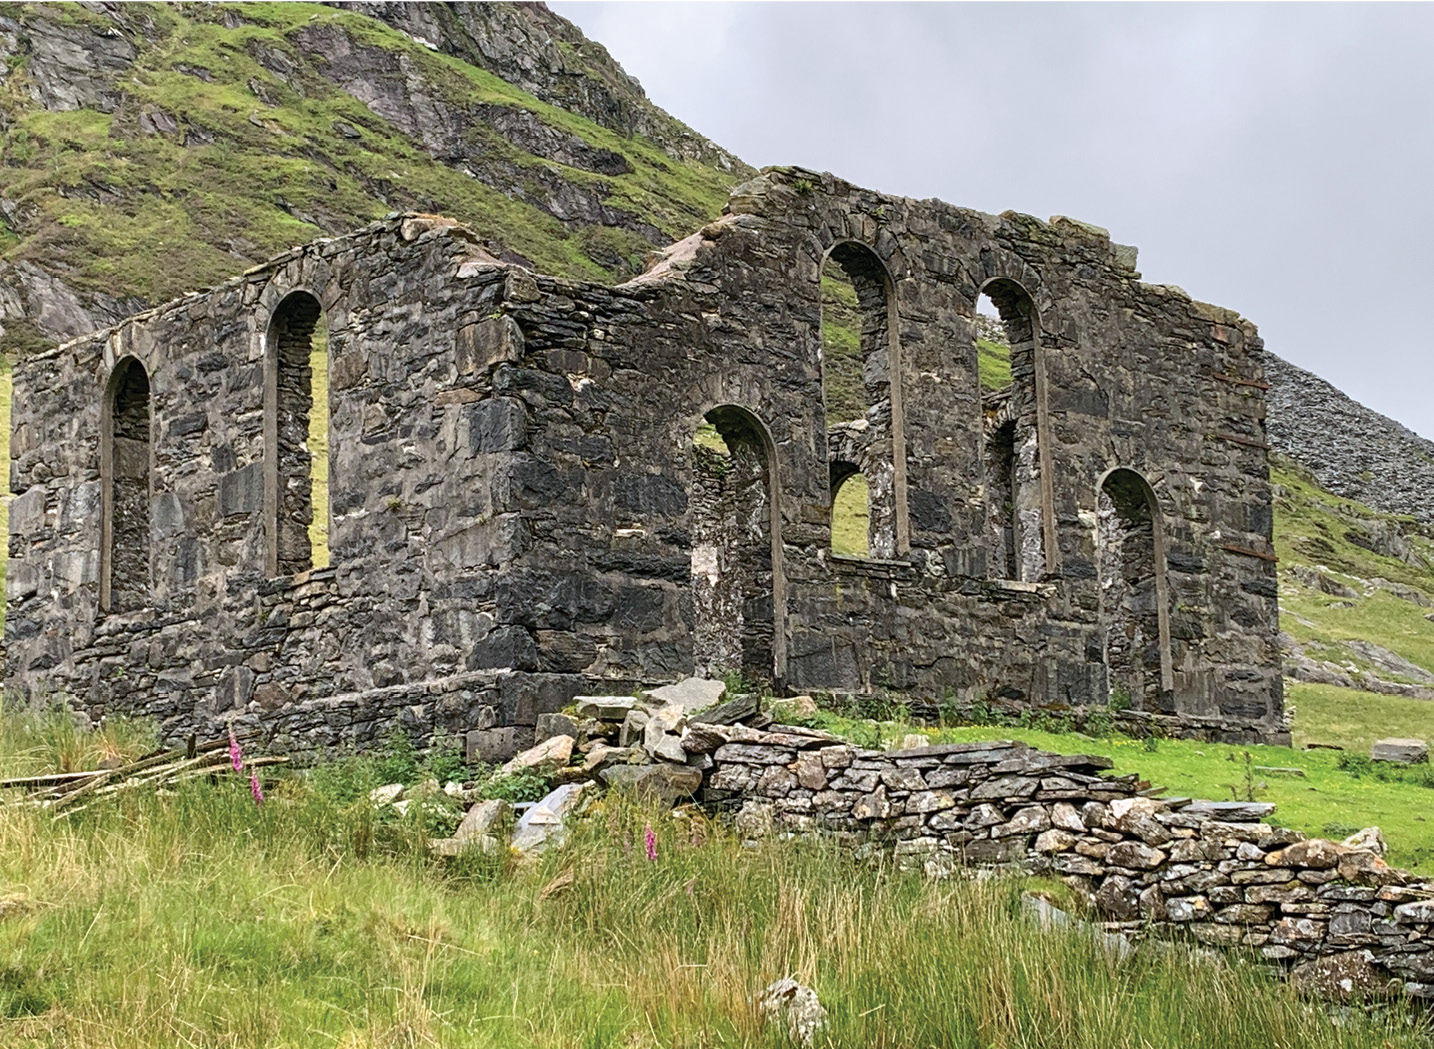 left Capel Tiberias, an Independent Chapel built in 1866 to serve the quarry community at Cwmorthin, once attracted congregations of up to 100 people.